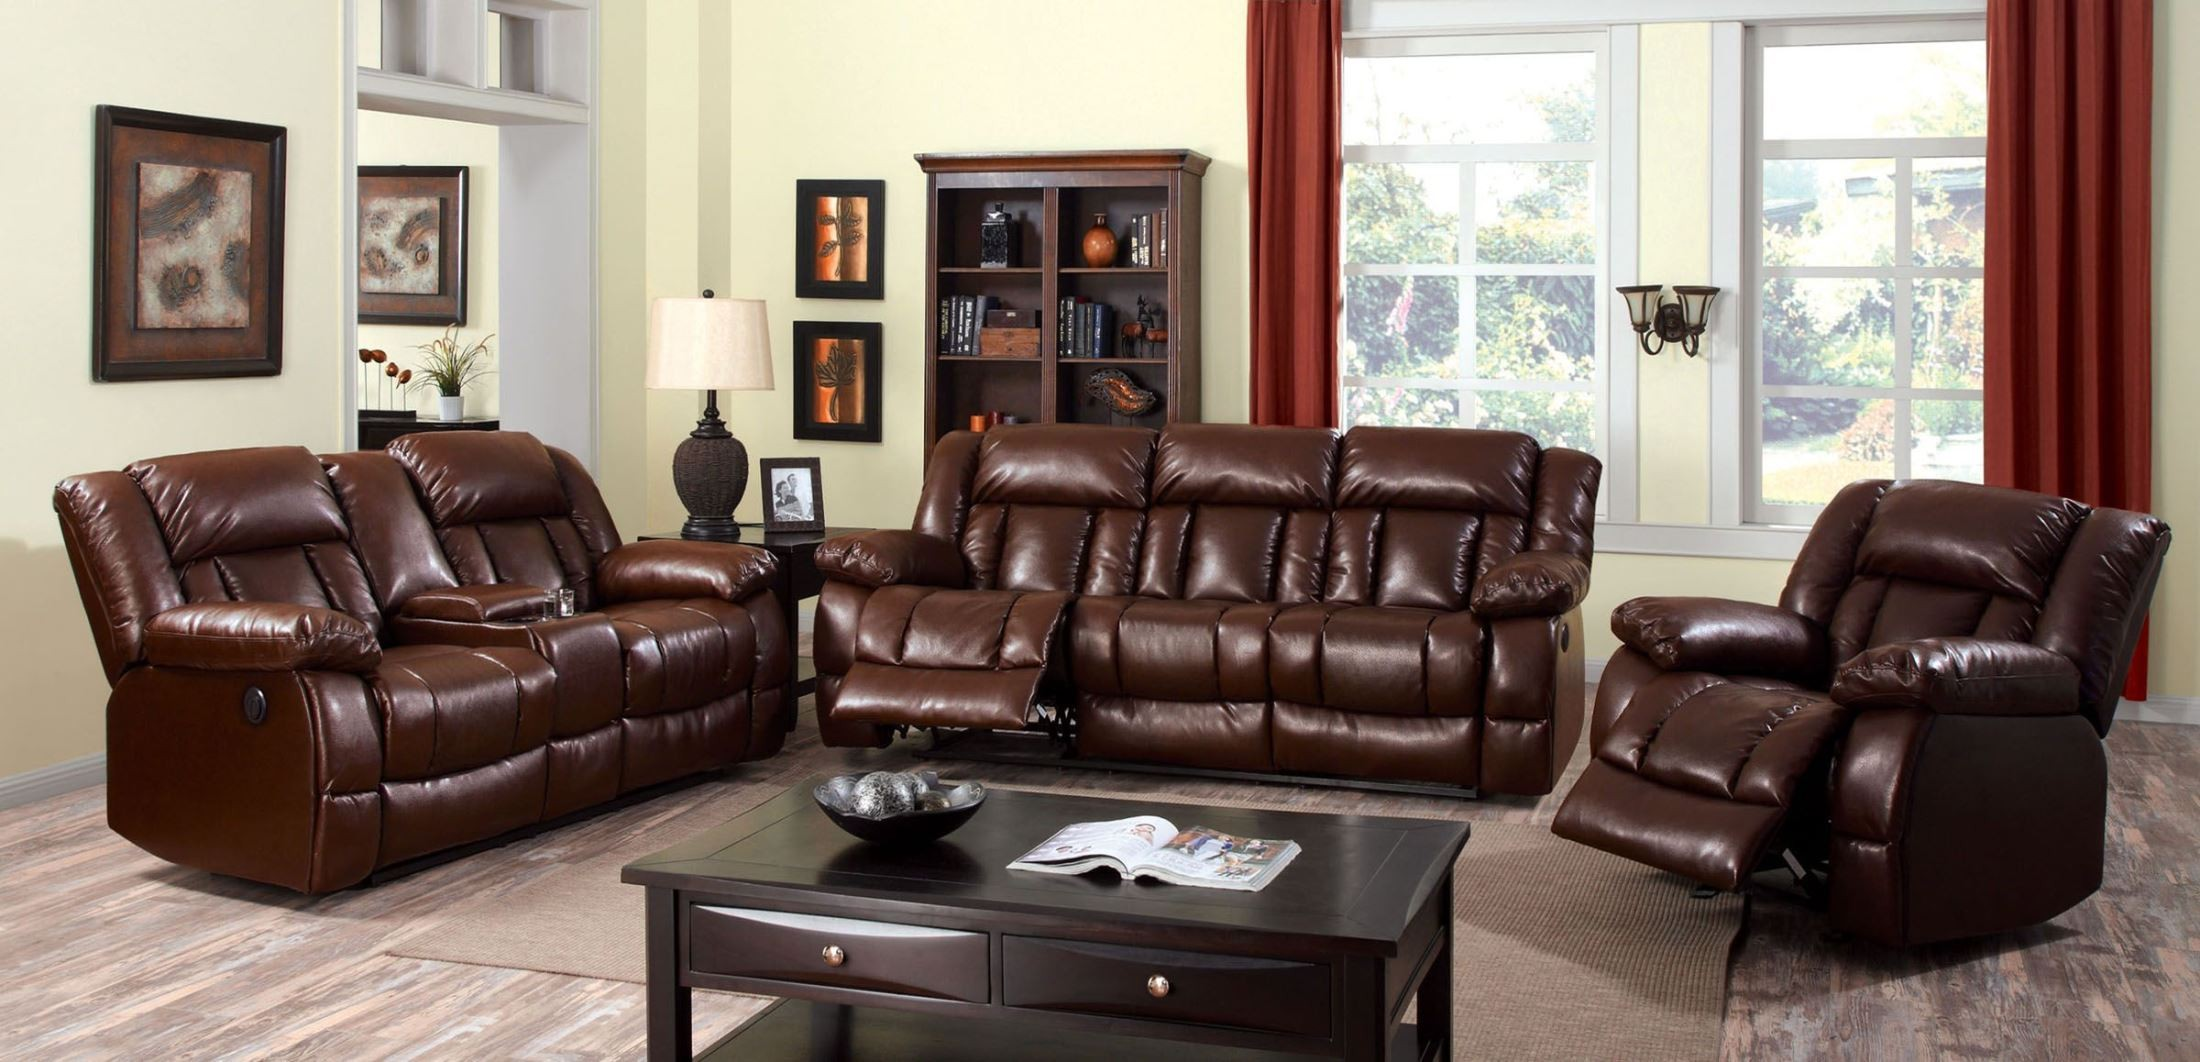 Wimbledon Brown Power Reclining Sofa from Furniture of America